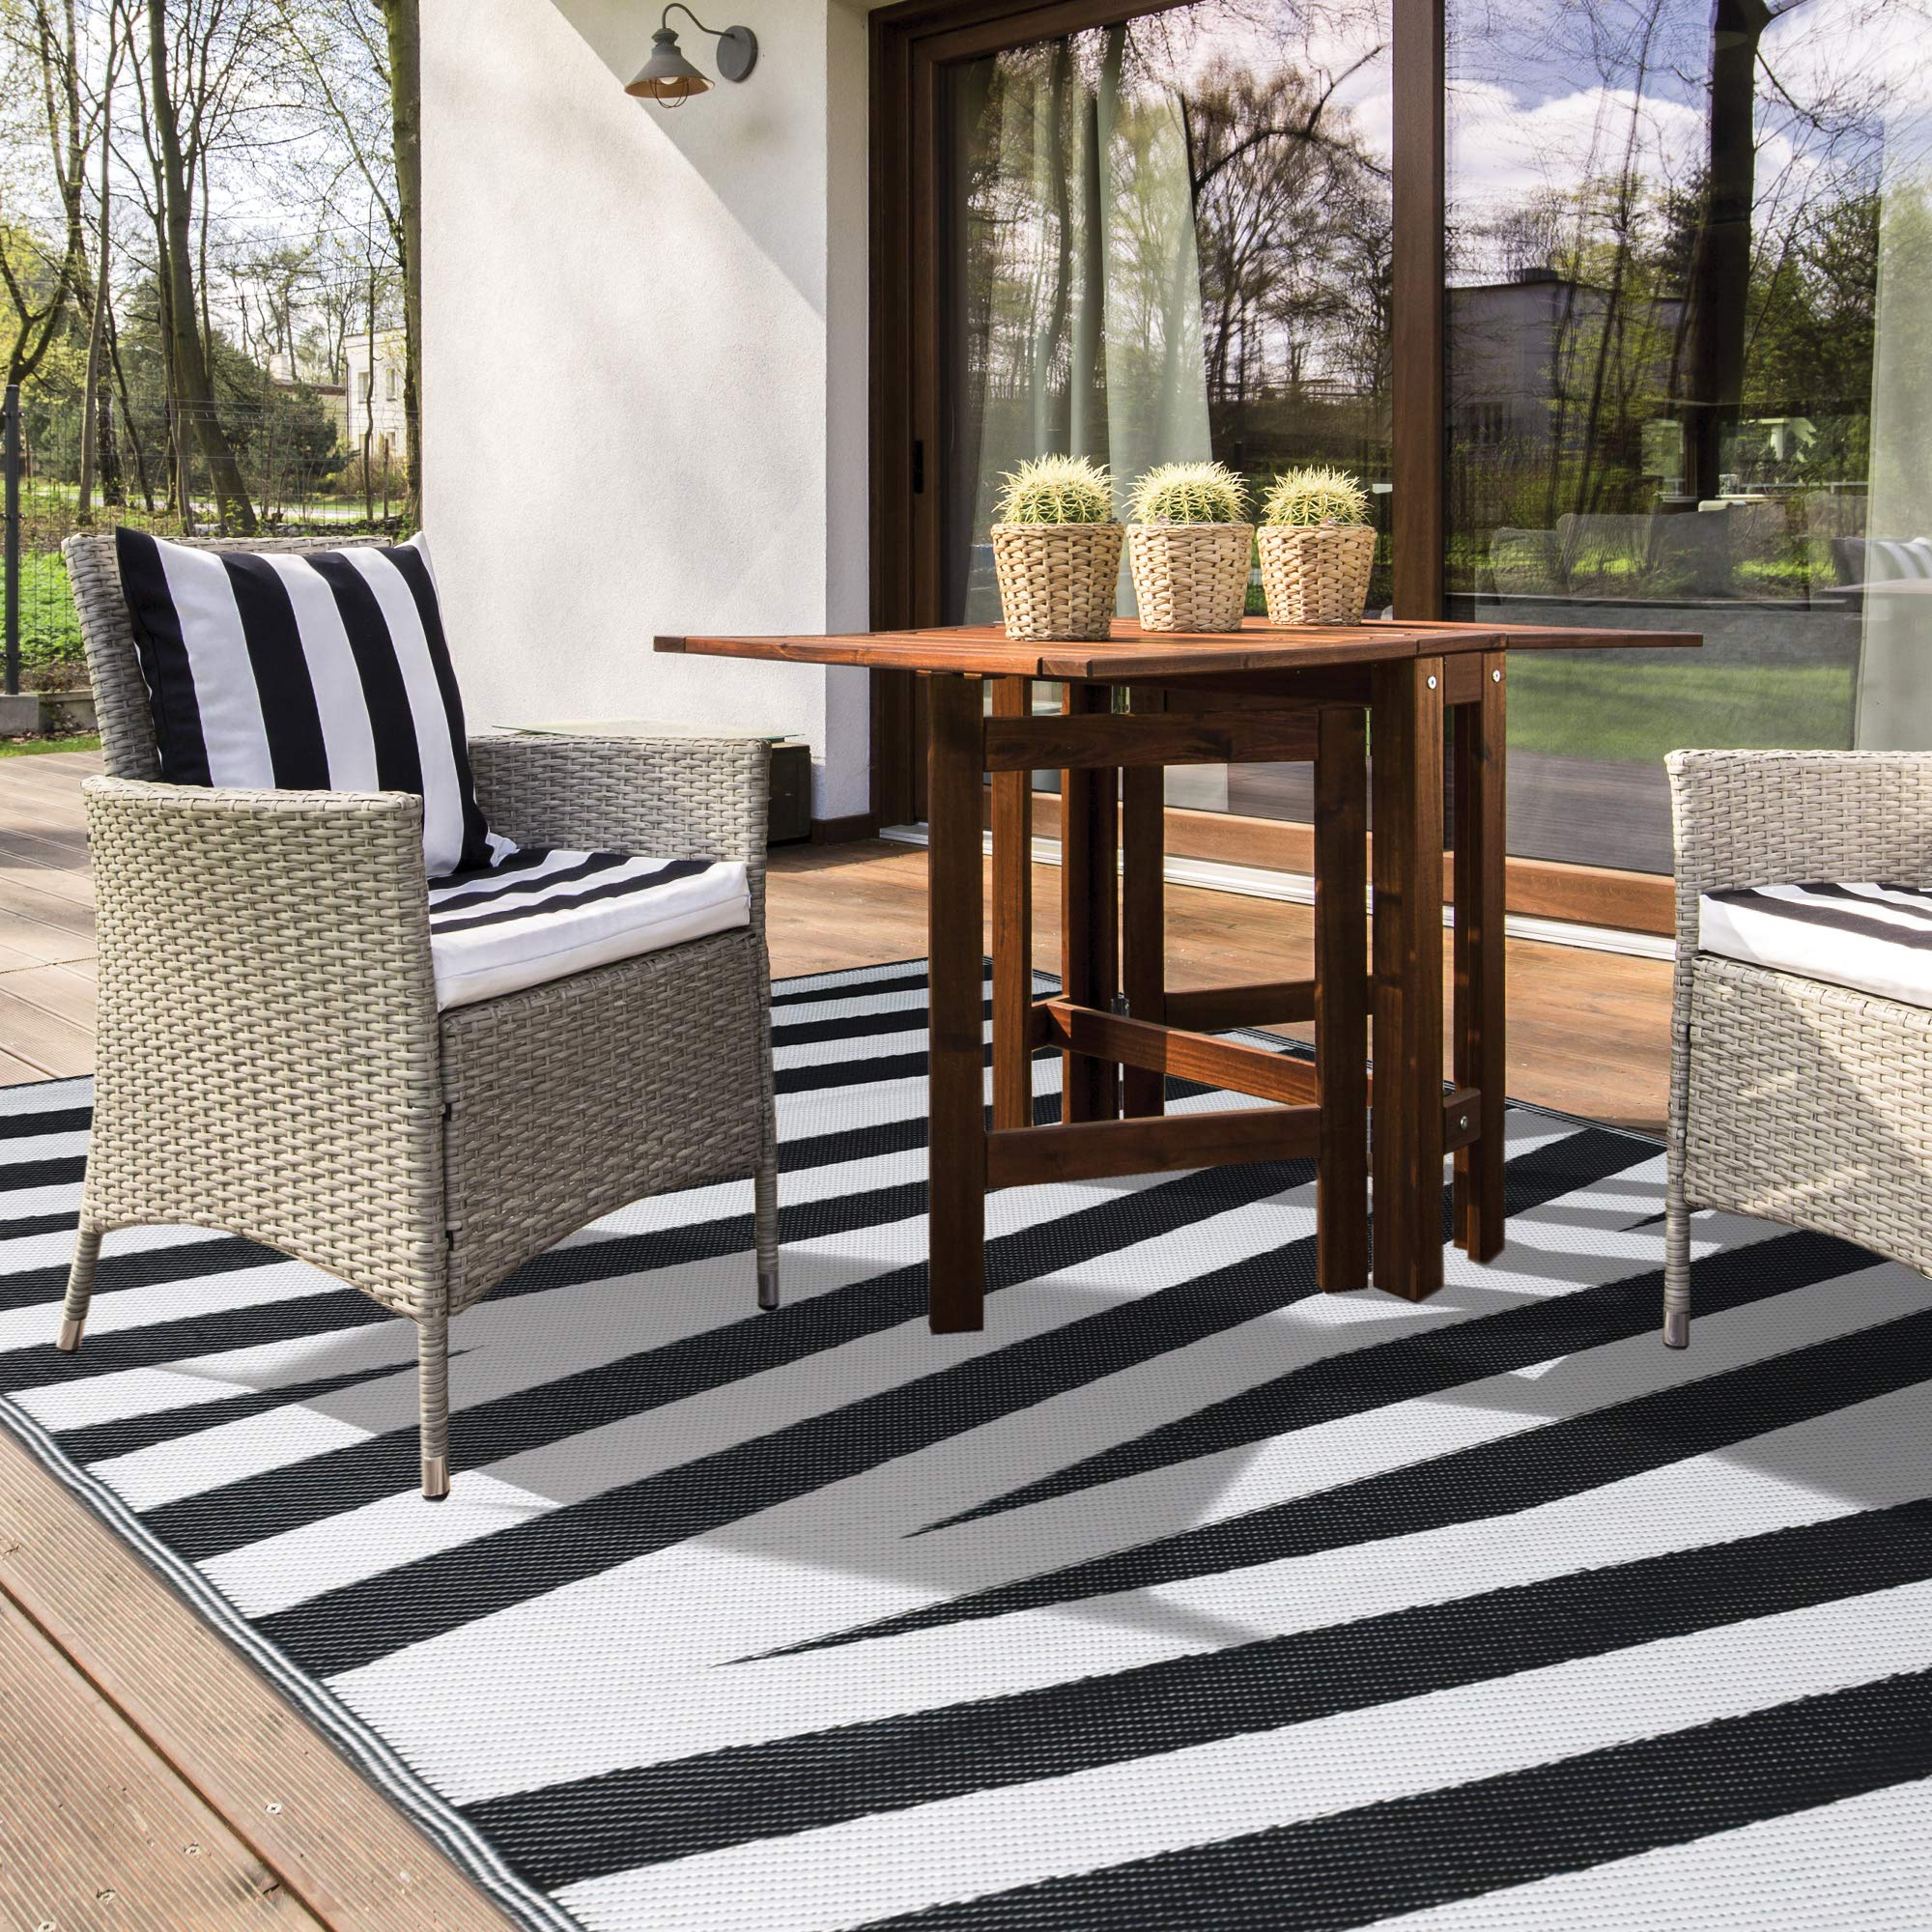 iCustomRug Inverso Outdoor Rug Collection, Reversible Plastic Area Rug 5' x 8' Will Not Fade for Patio, Balcony or Beach in Black and White